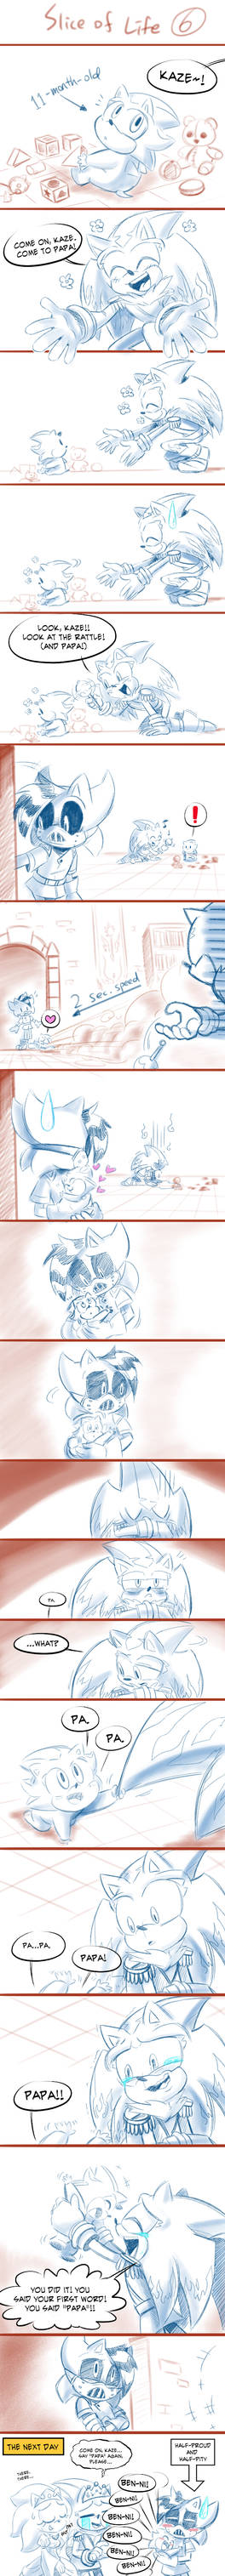 Slice of Life 6 (Kaze's First Word)